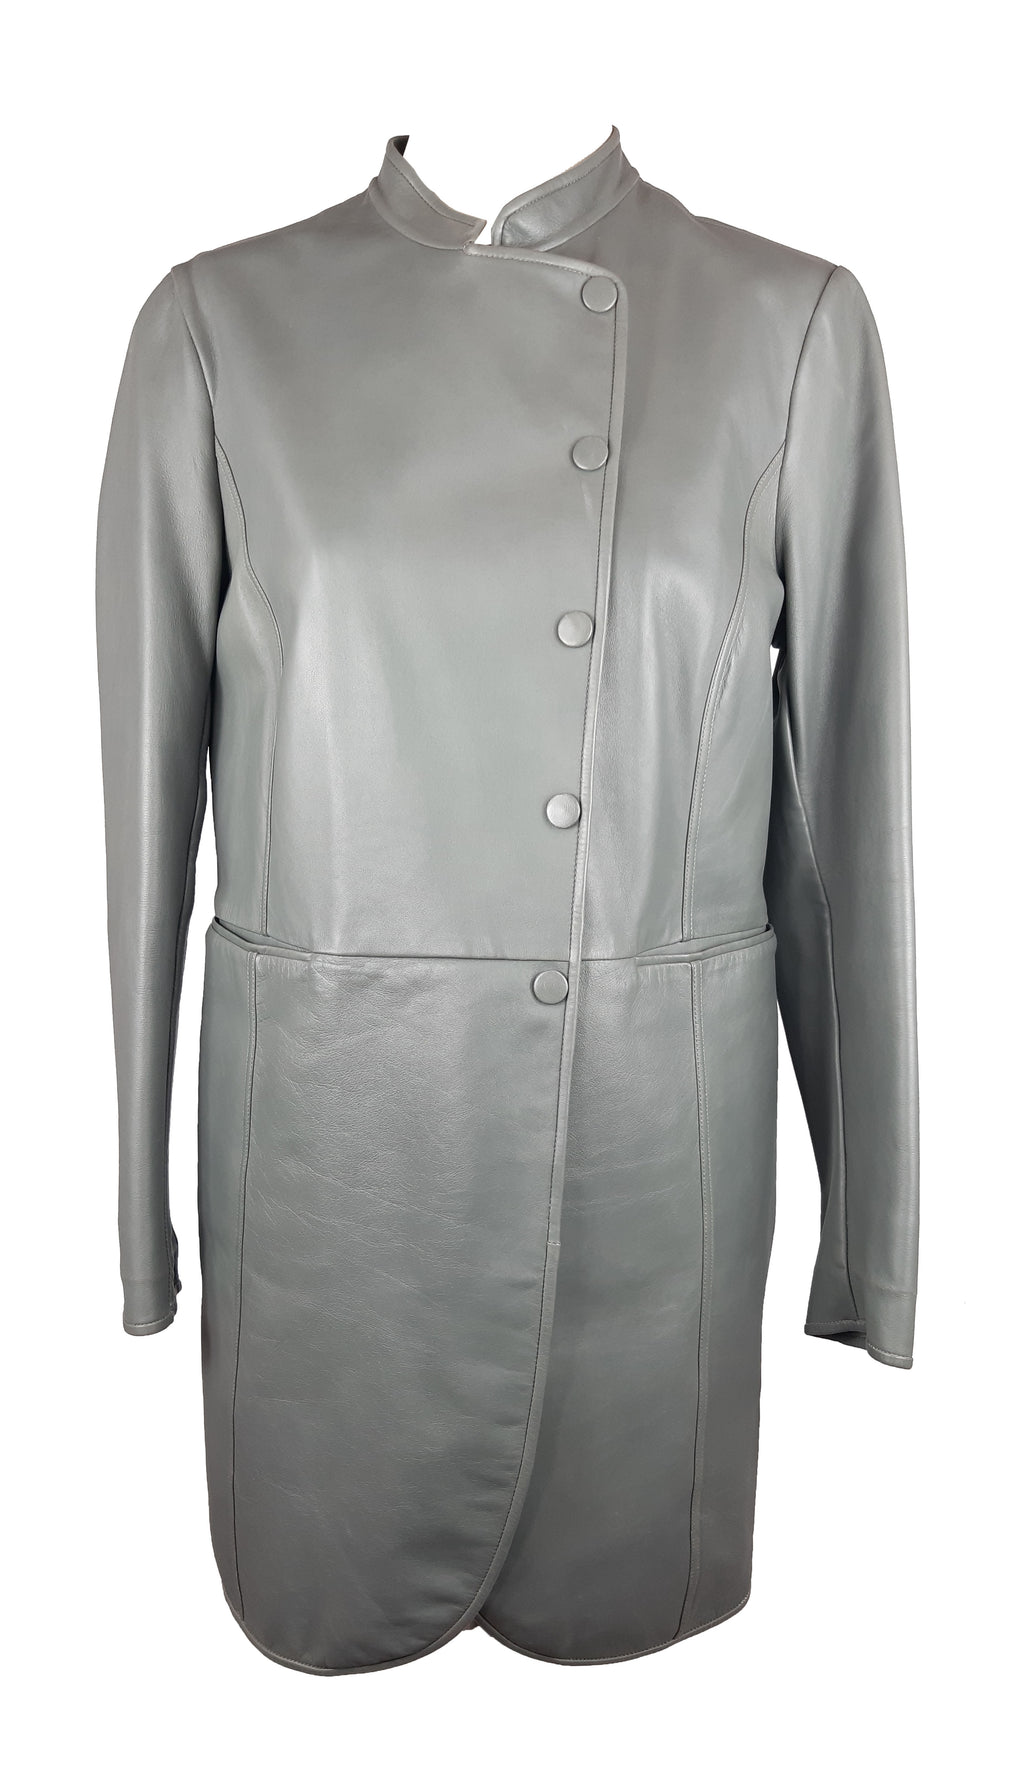 Emporio Armani Grey Leather Coat with Mandarin Collar Size 38 (EU)